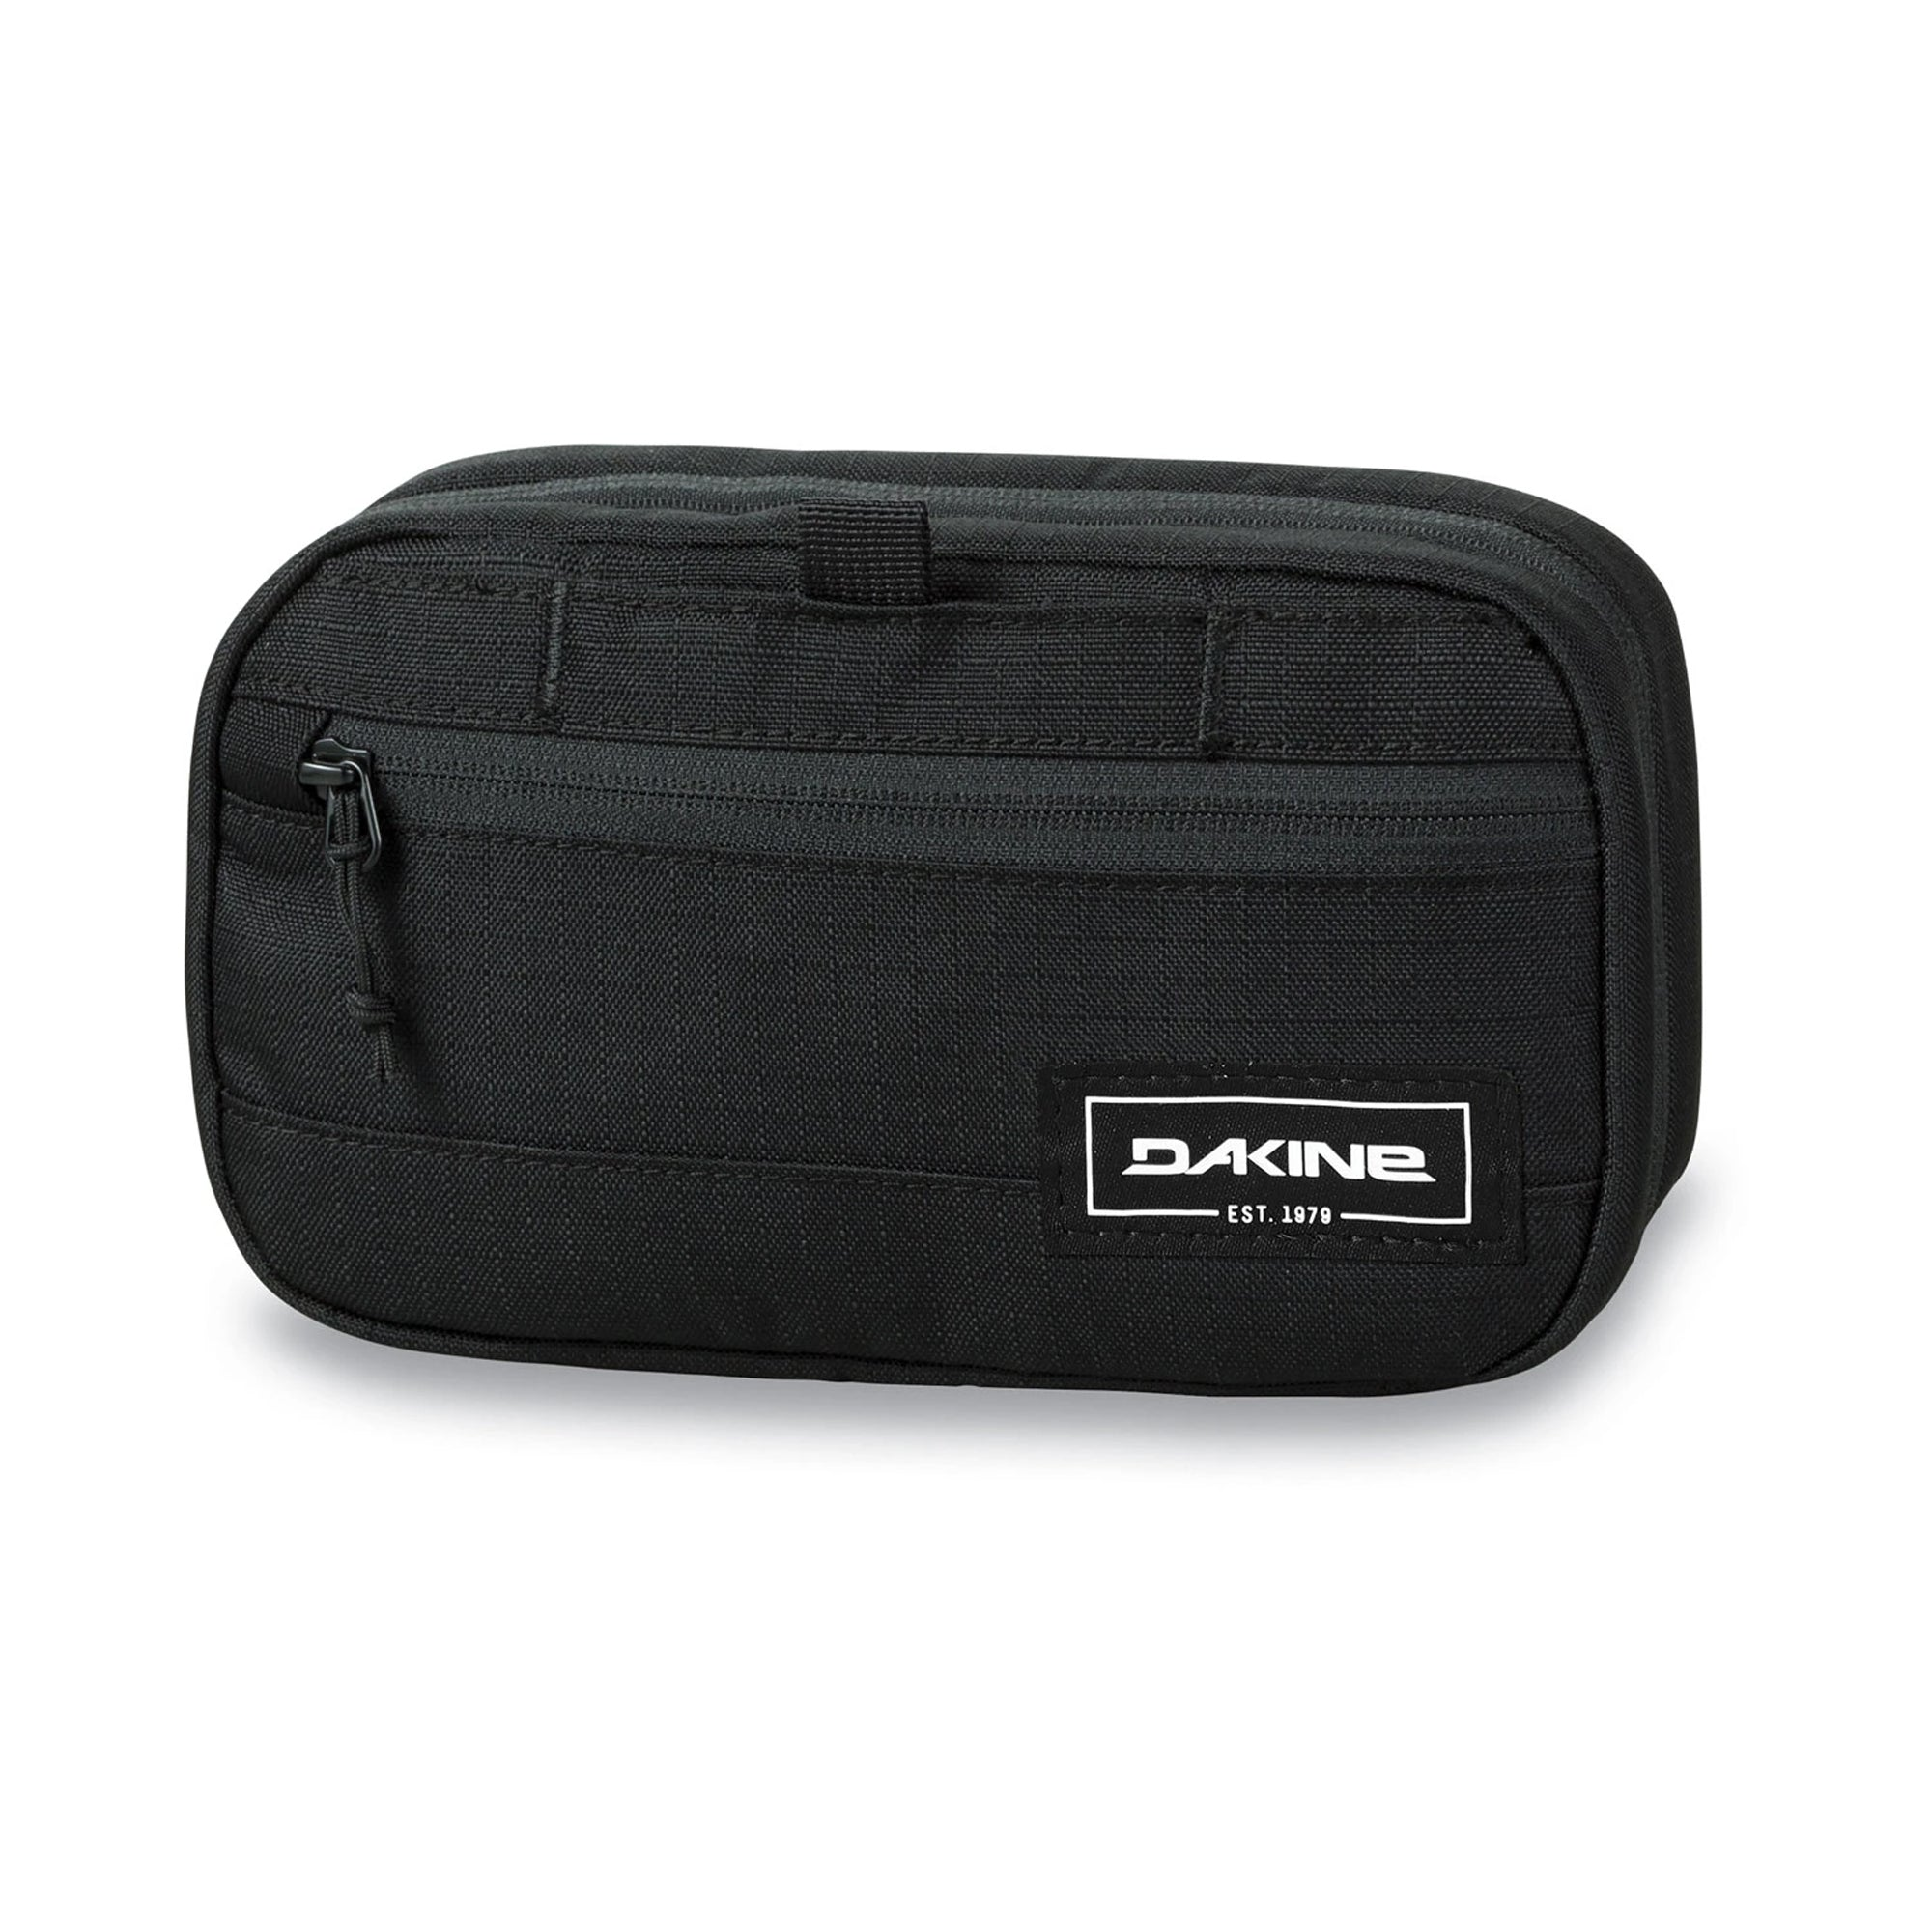 Dakine Shower Kit S